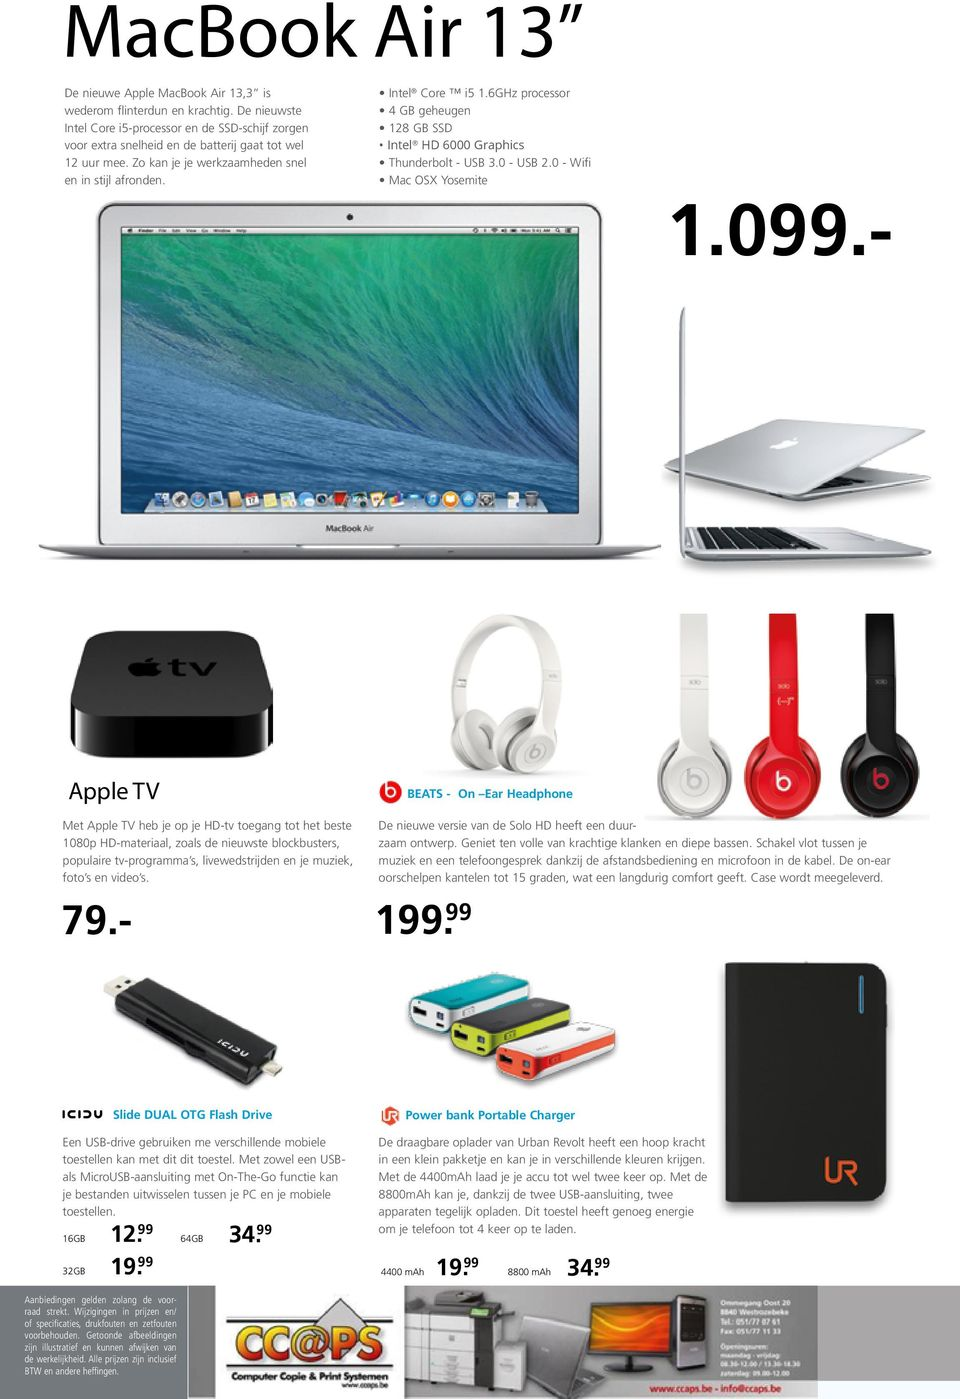 6GHz processor 4 GB geheugen 128 GB SSD Intel HD 6000 Graphics Thunderbolt - USB 3.0 - USB 2.0 - Wifi Mac OSX Yosemite 1.099.